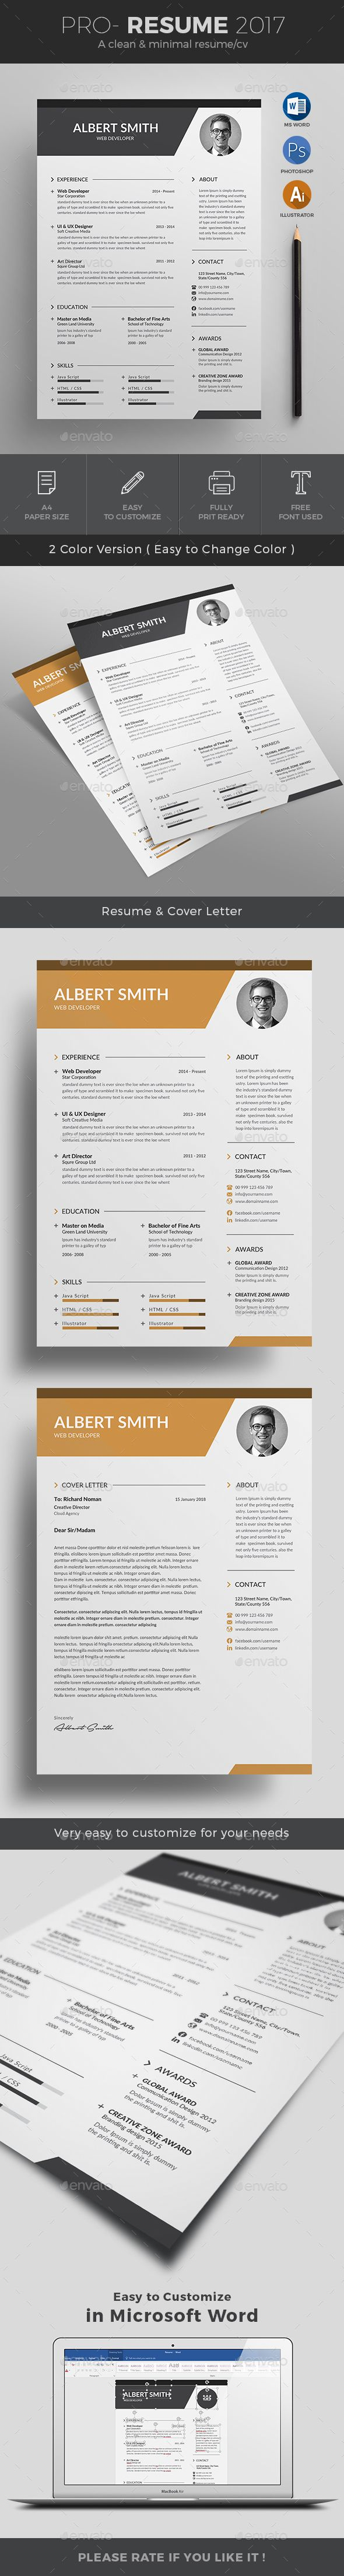 Best Cv Images On   Resume Ideas Resume Tips And Page